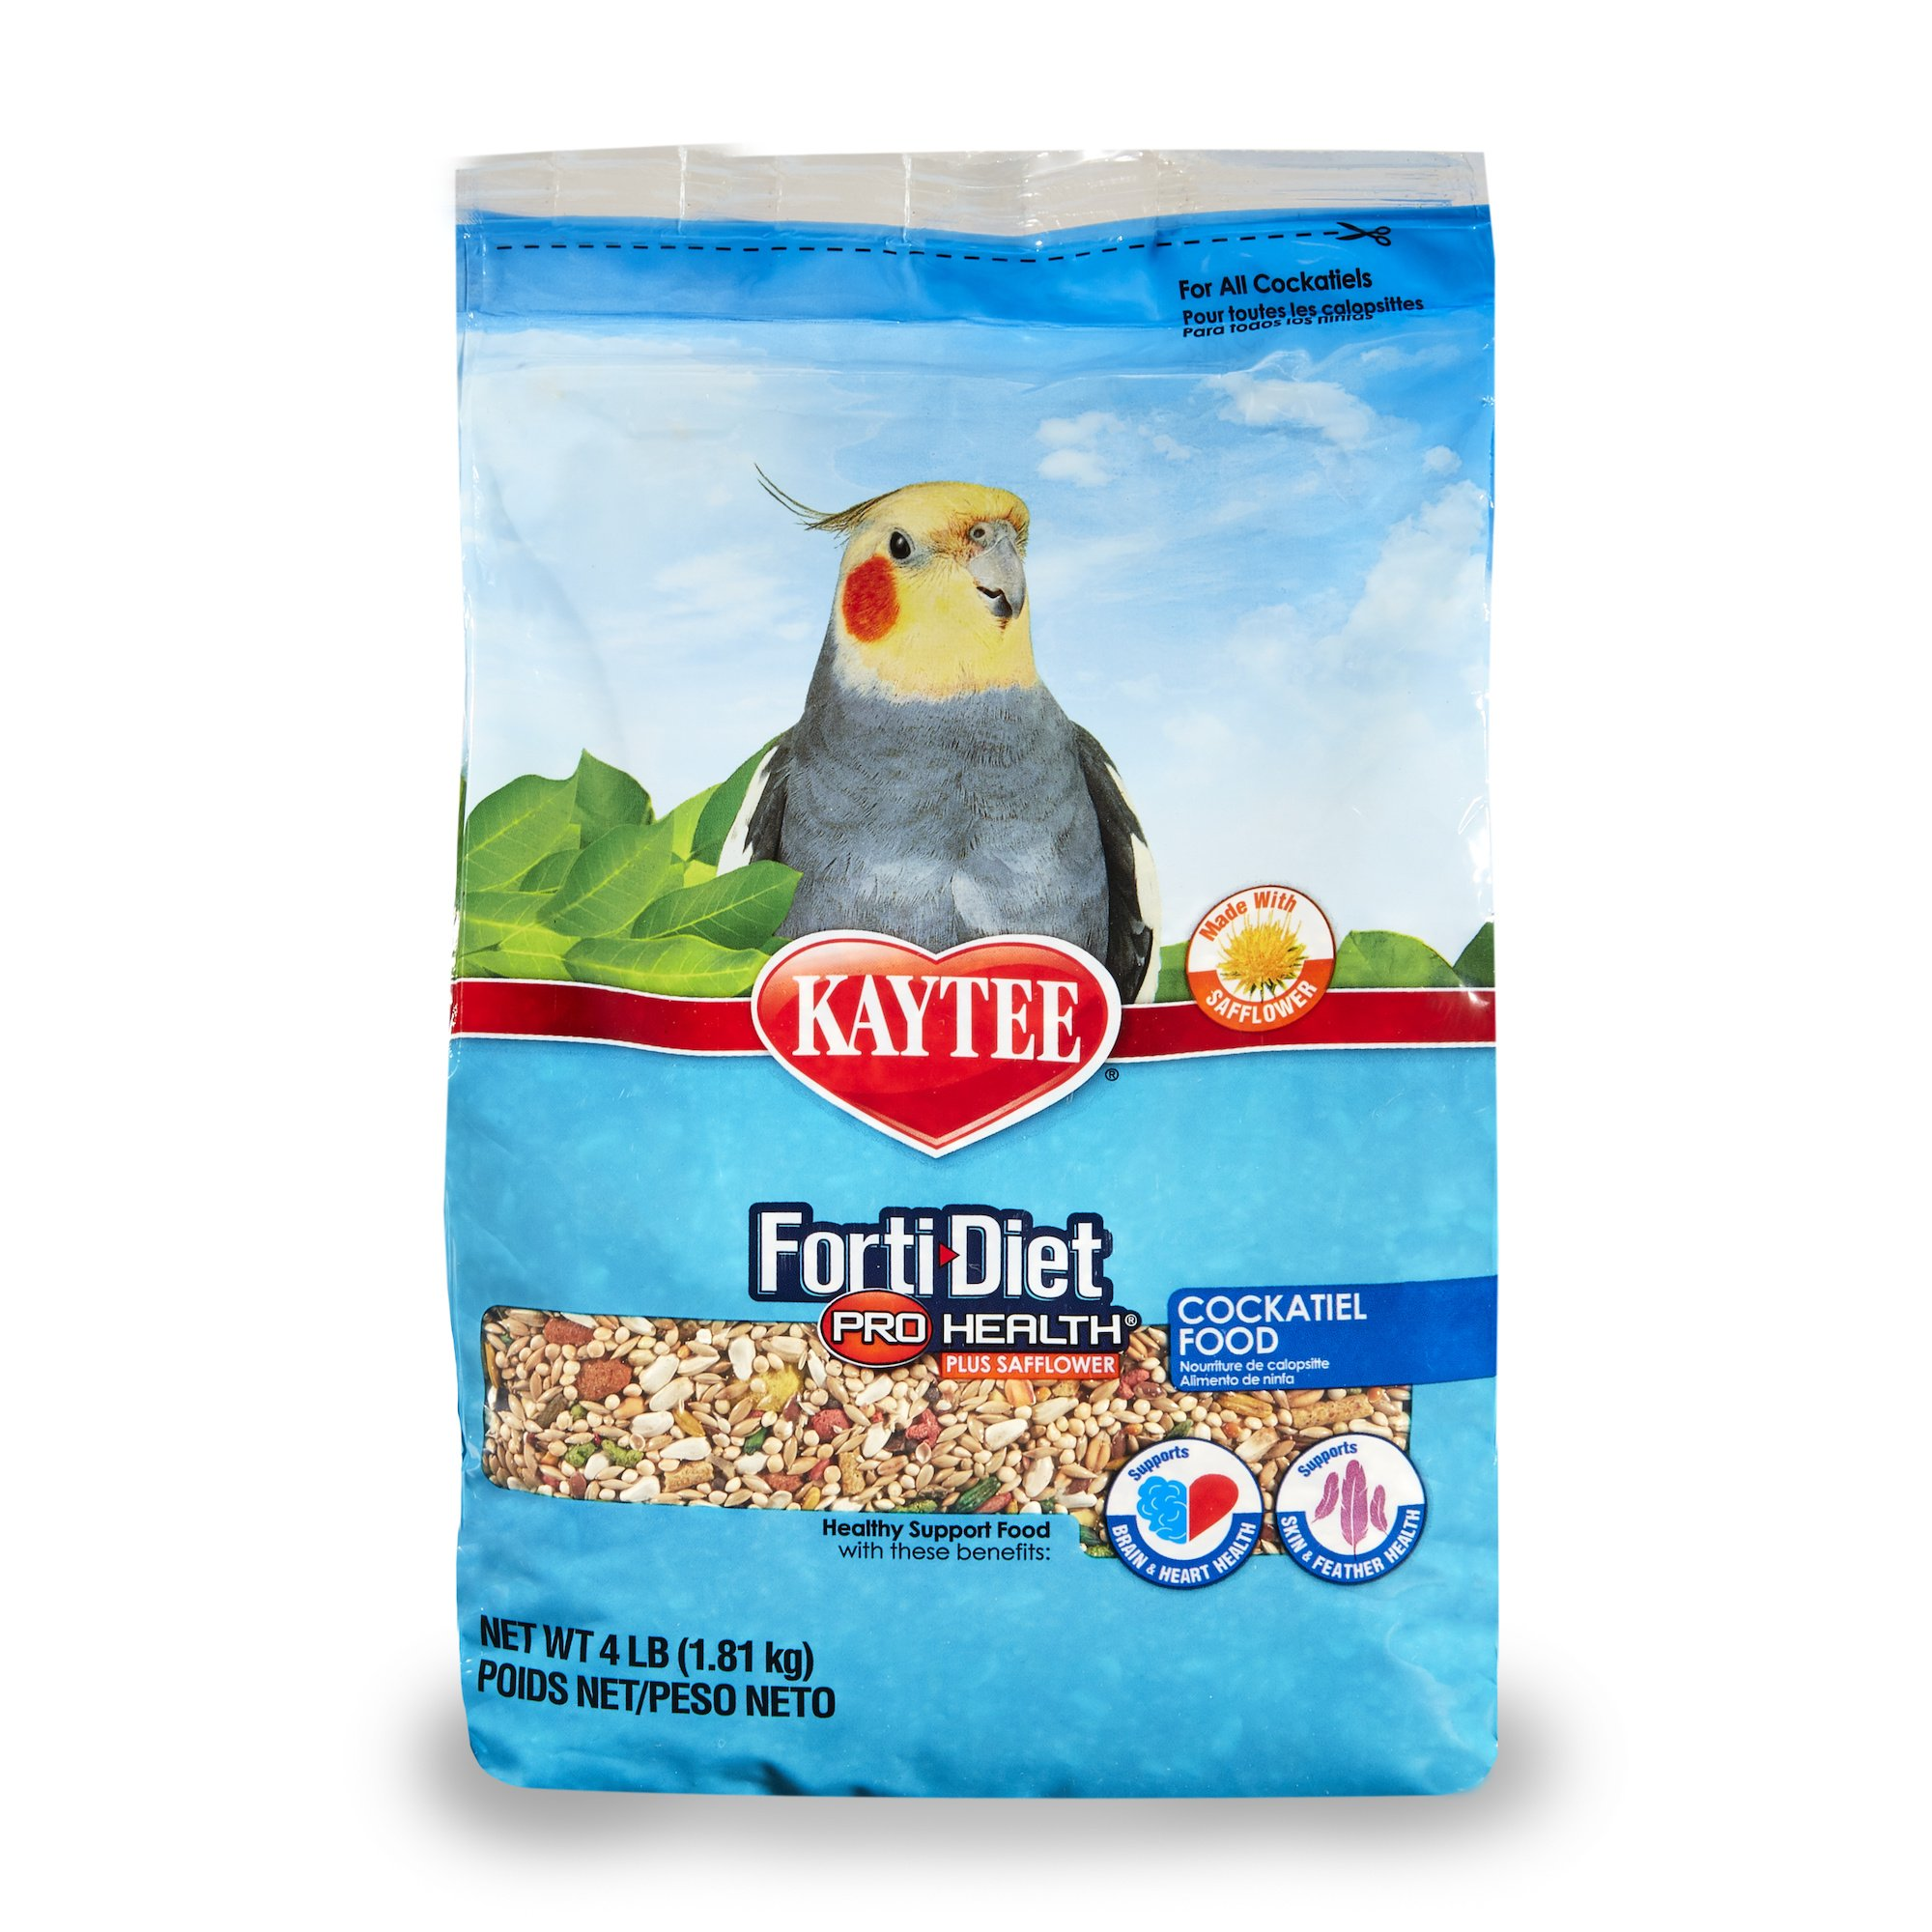 Kaytee Forti-Diet Pro Health Cockatiel food with Safflower, 4 lb by Kaytee